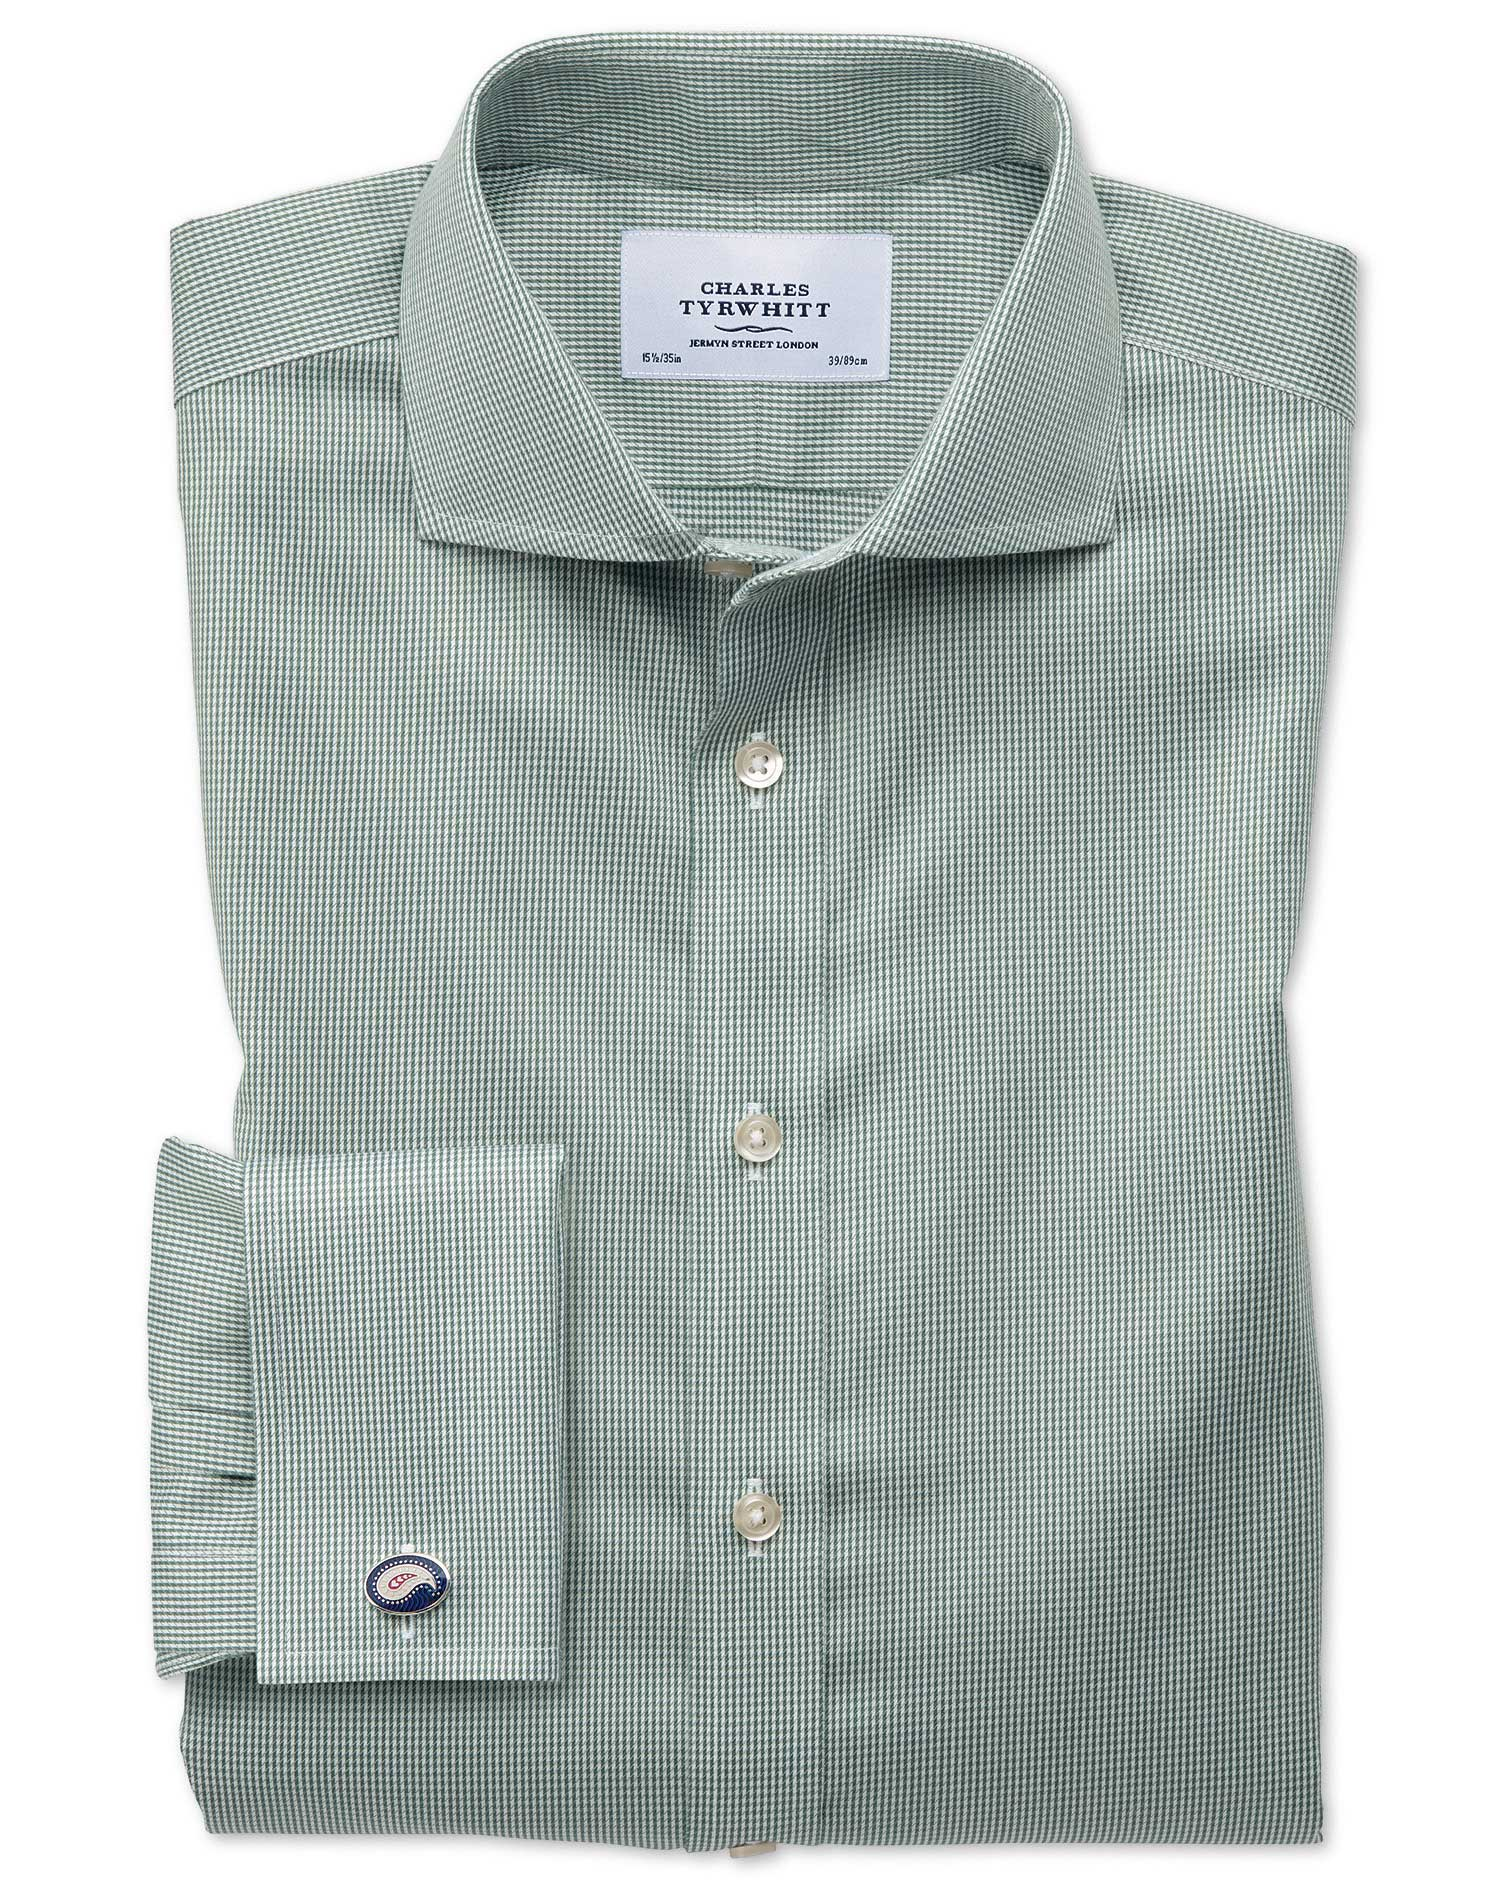 Slim Fit Cutaway Non-Iron Puppytooth Olive Cotton Formal Shirt Double Cuff Size 16/34 by Charles Tyr